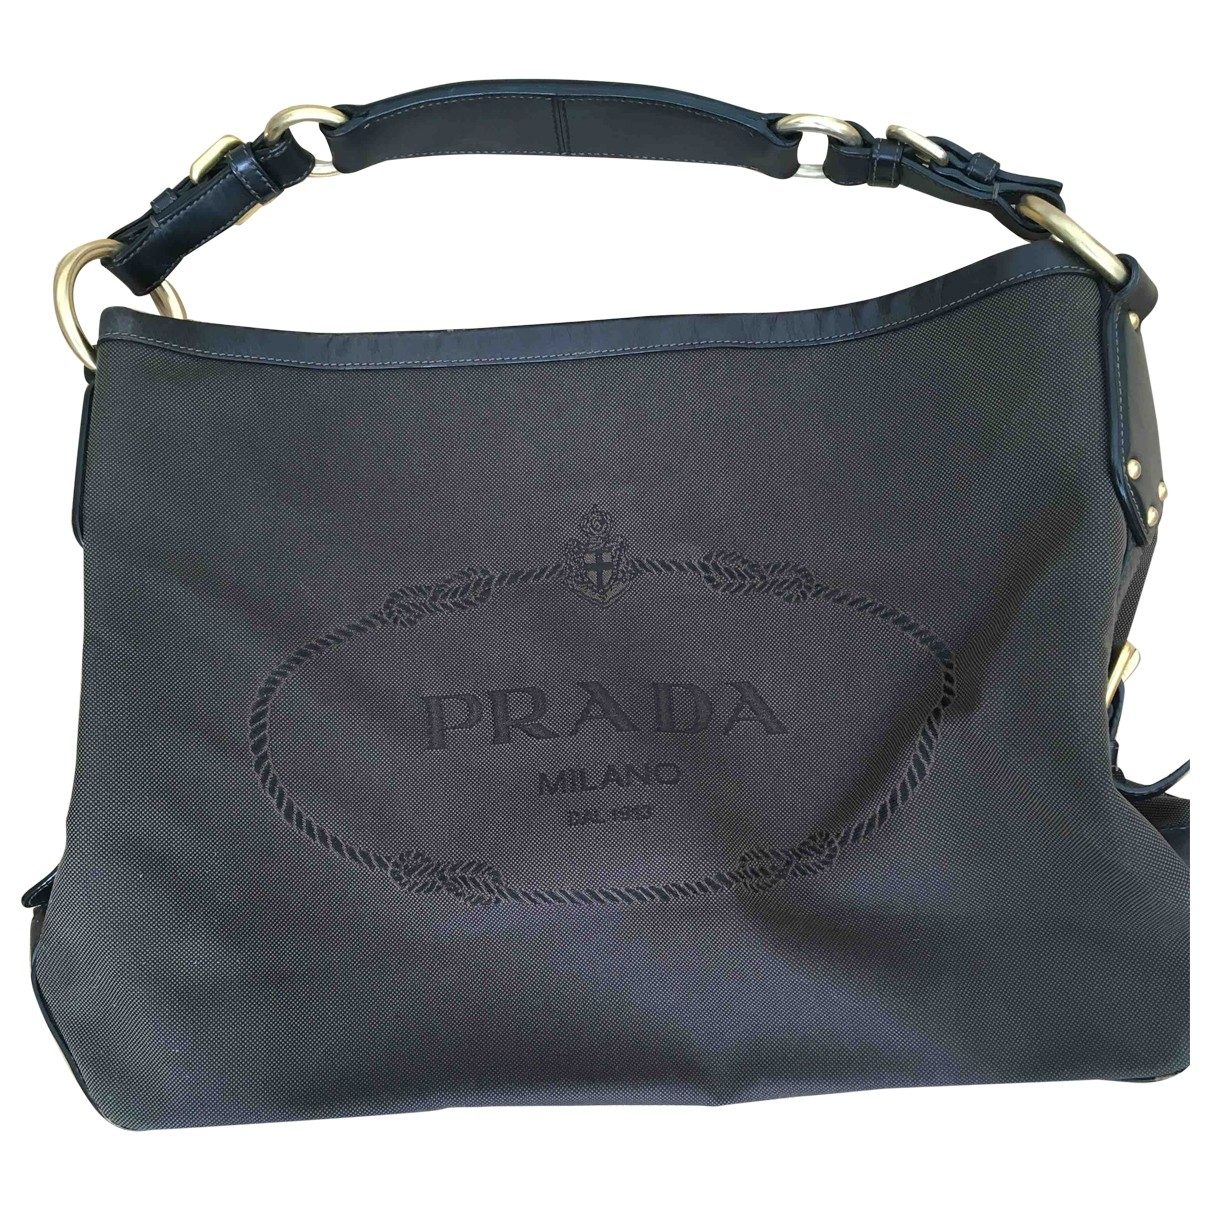 Prada \N Brown Cotton handbag for Women \N